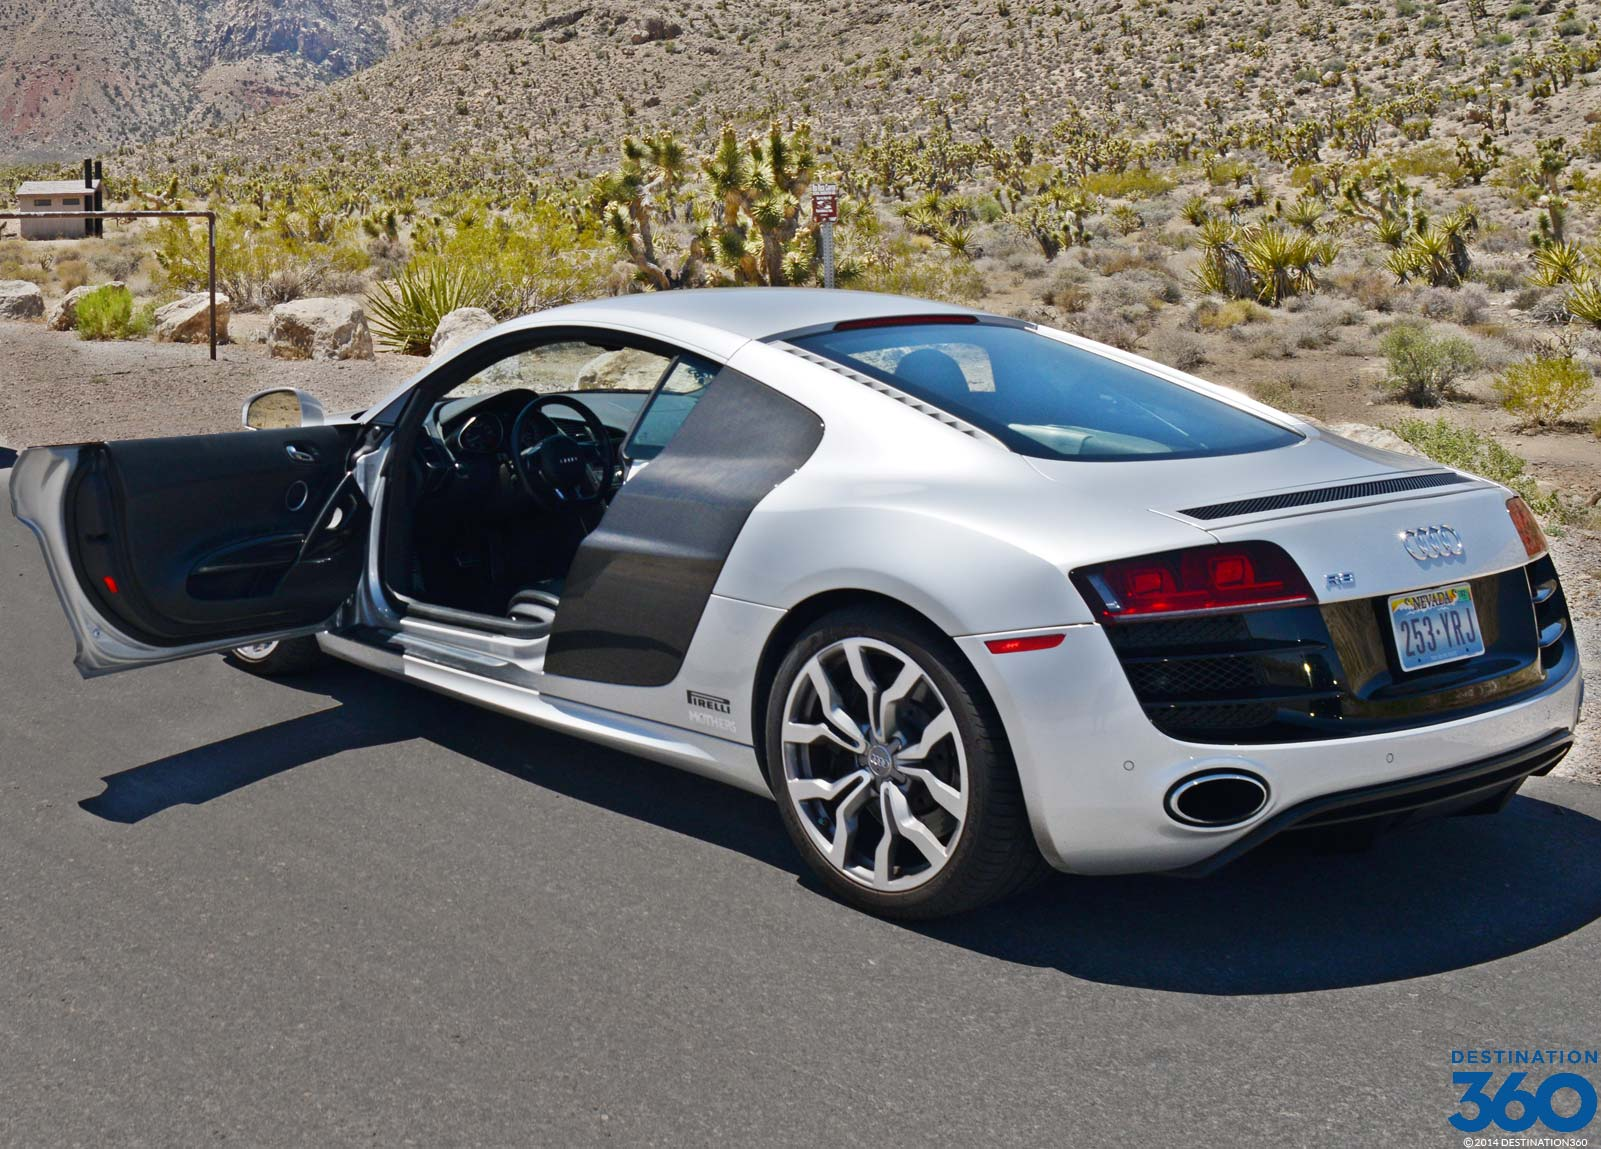 for rental a sports hourly in vegas lamborghini las rent airport car cars